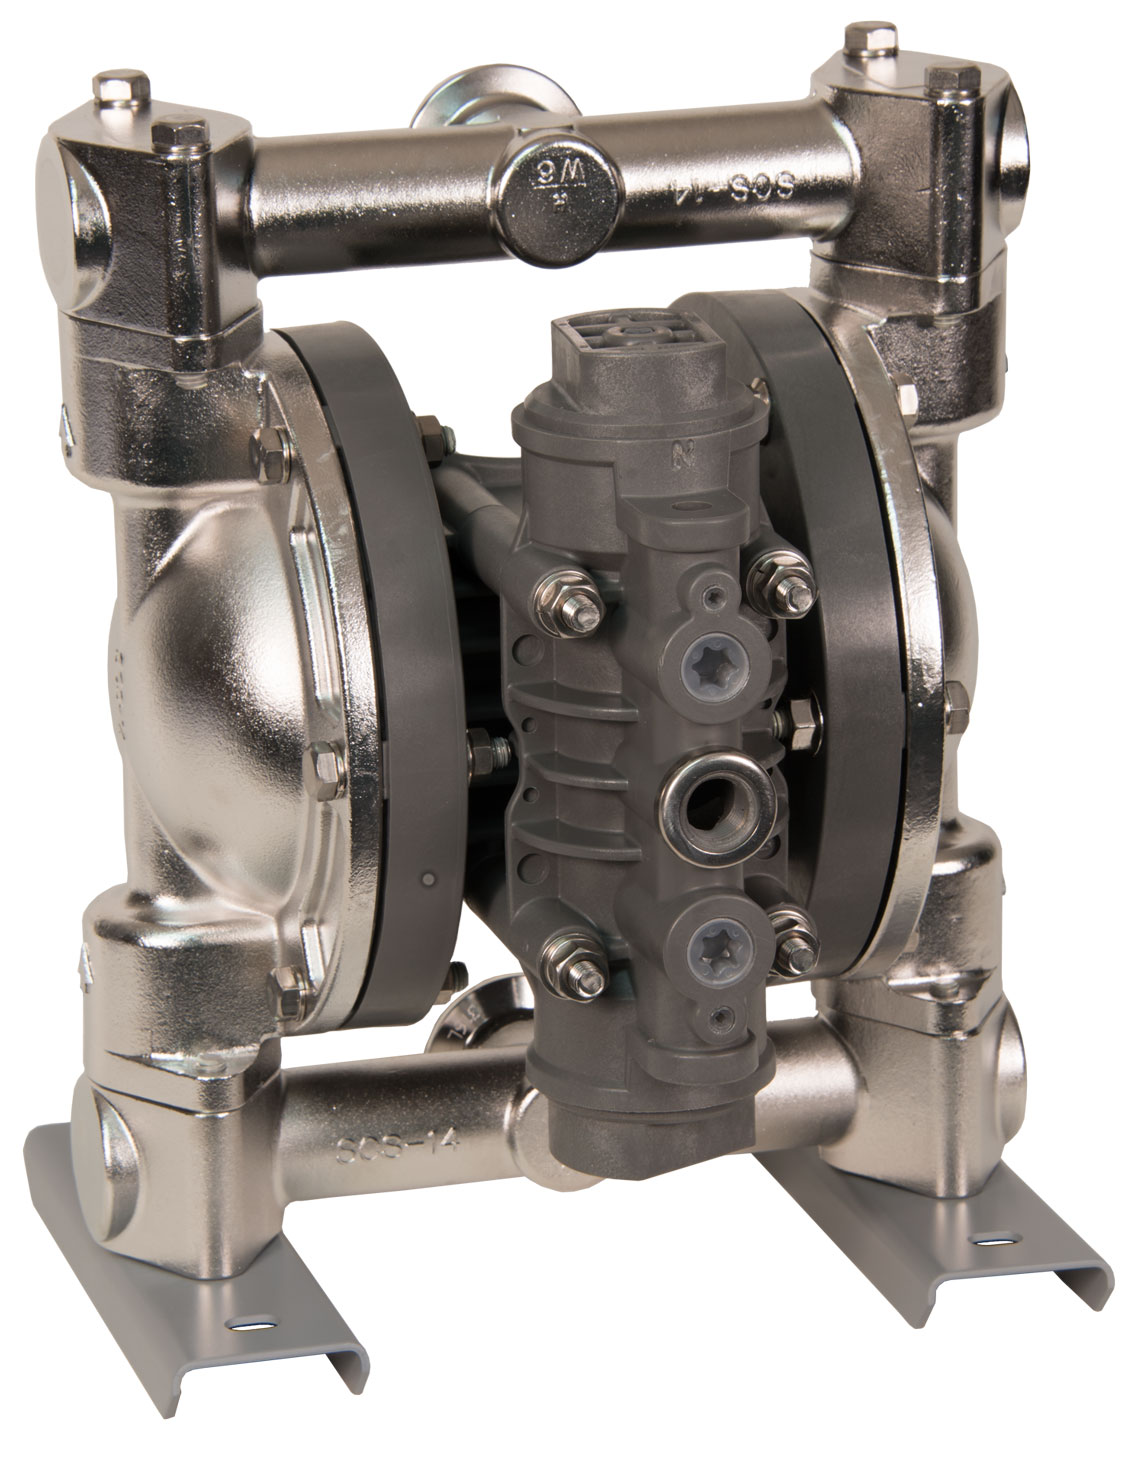 Yamada fda compliant sanitary pumps reliable equip related products more pumps parts ccuart Choice Image